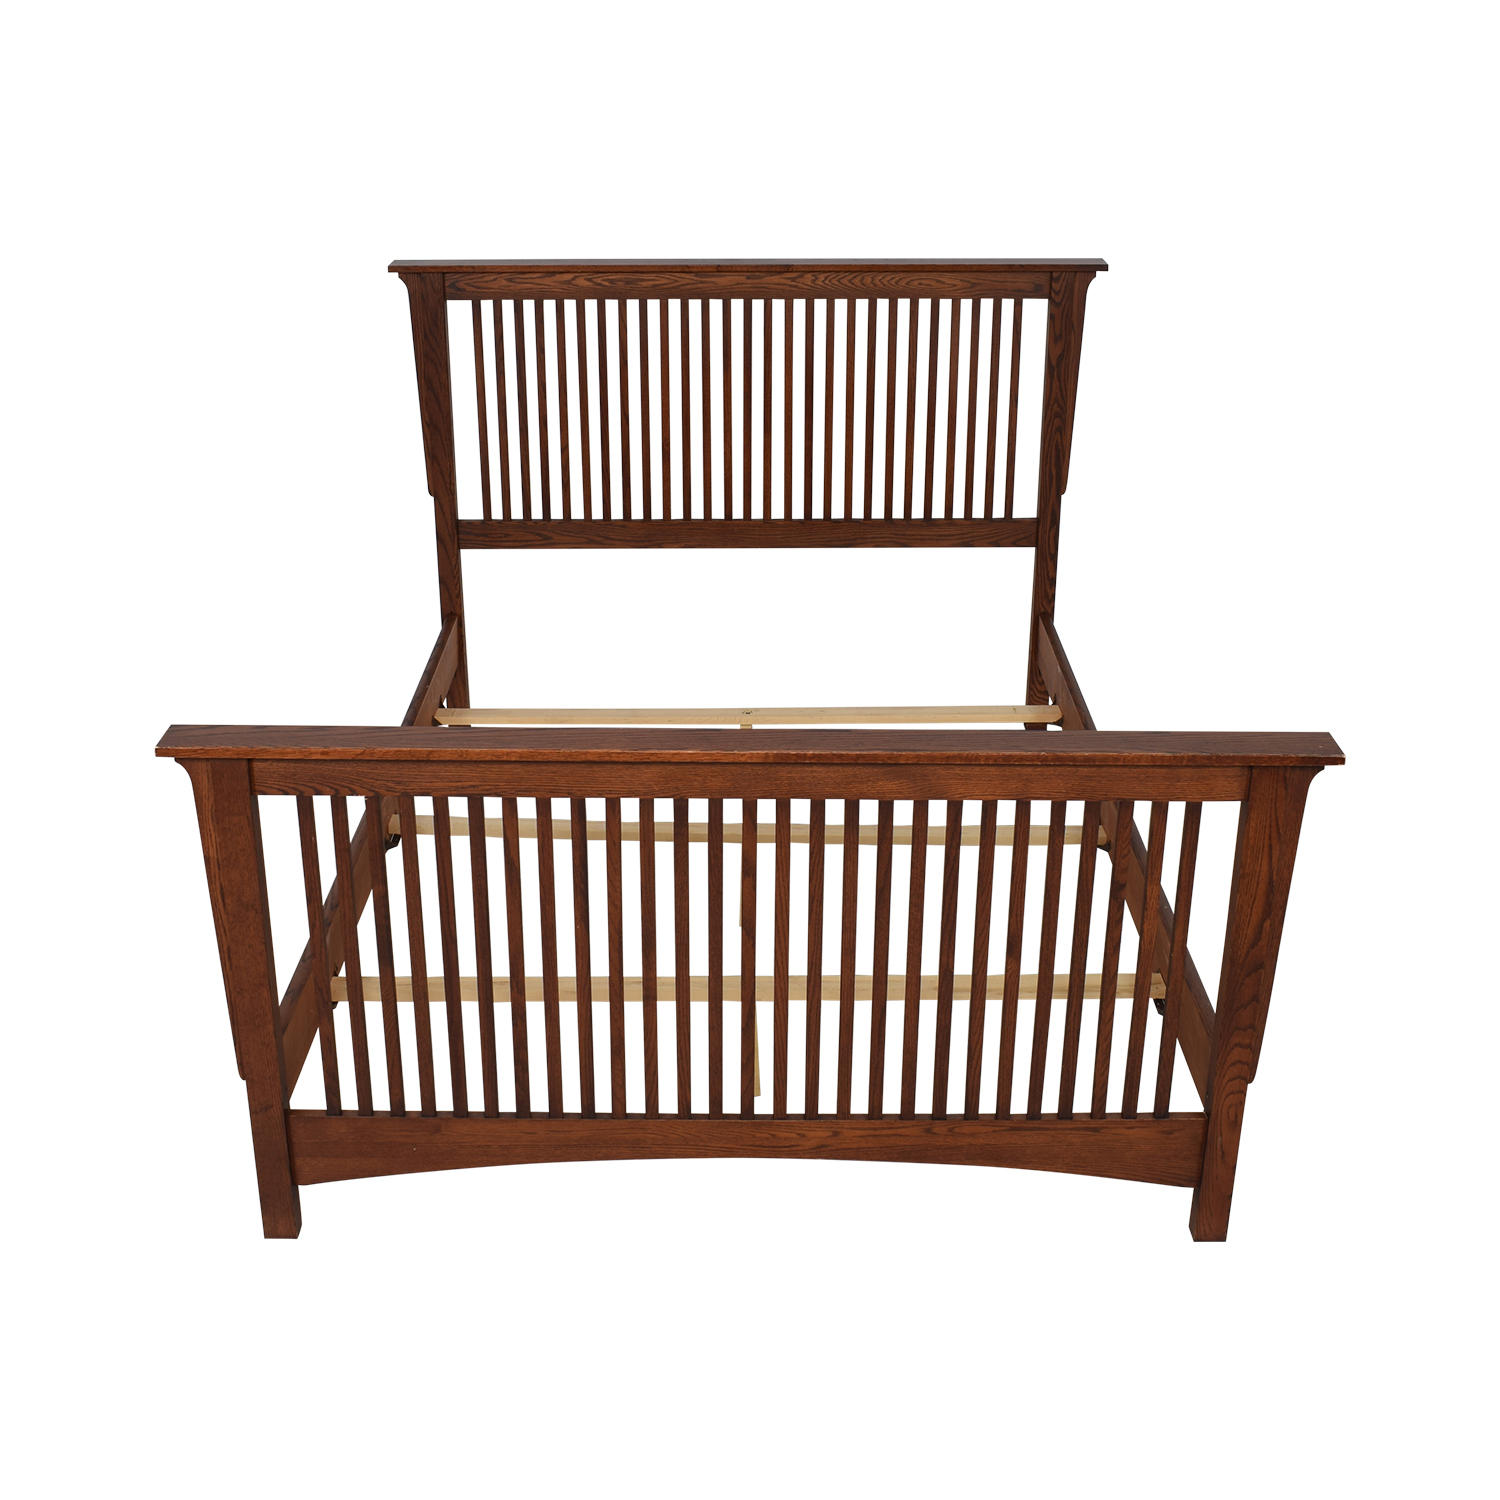 Thomasville Thomasville Queen Spindle Bed Frame brown